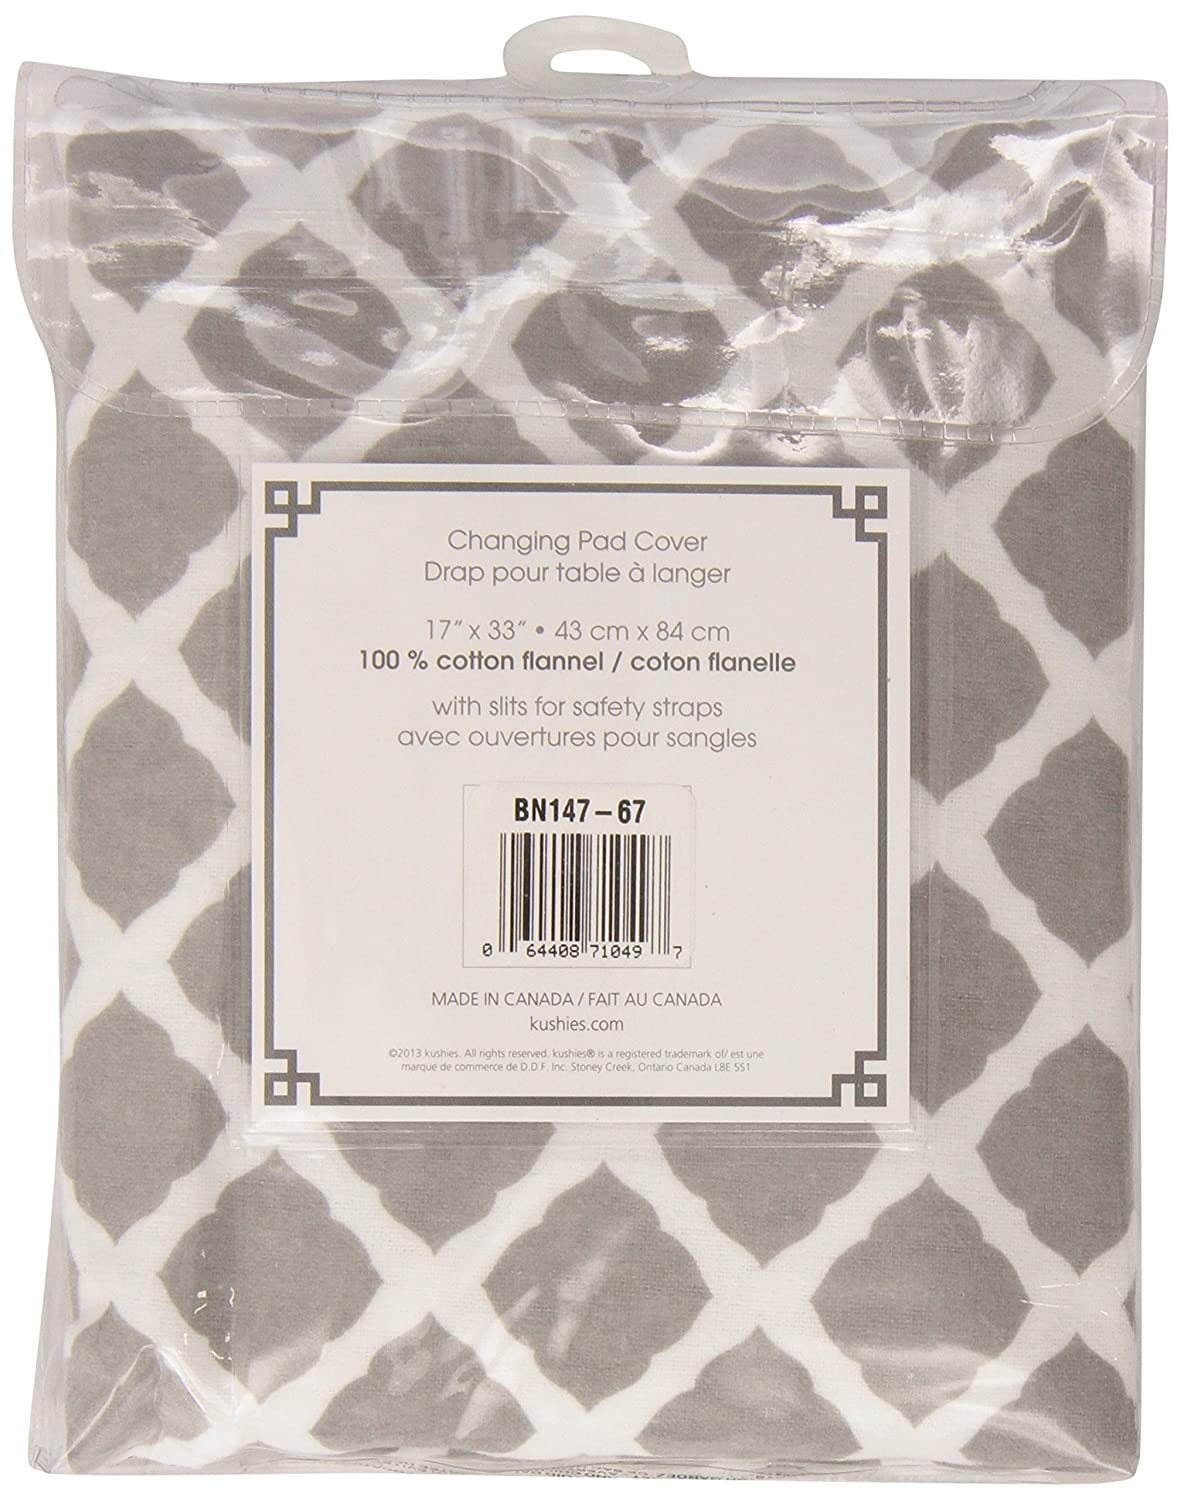 Ben /& Noa Flannel Fitted Change Pad Sheet with Slits for Safety Straps Pink Solid